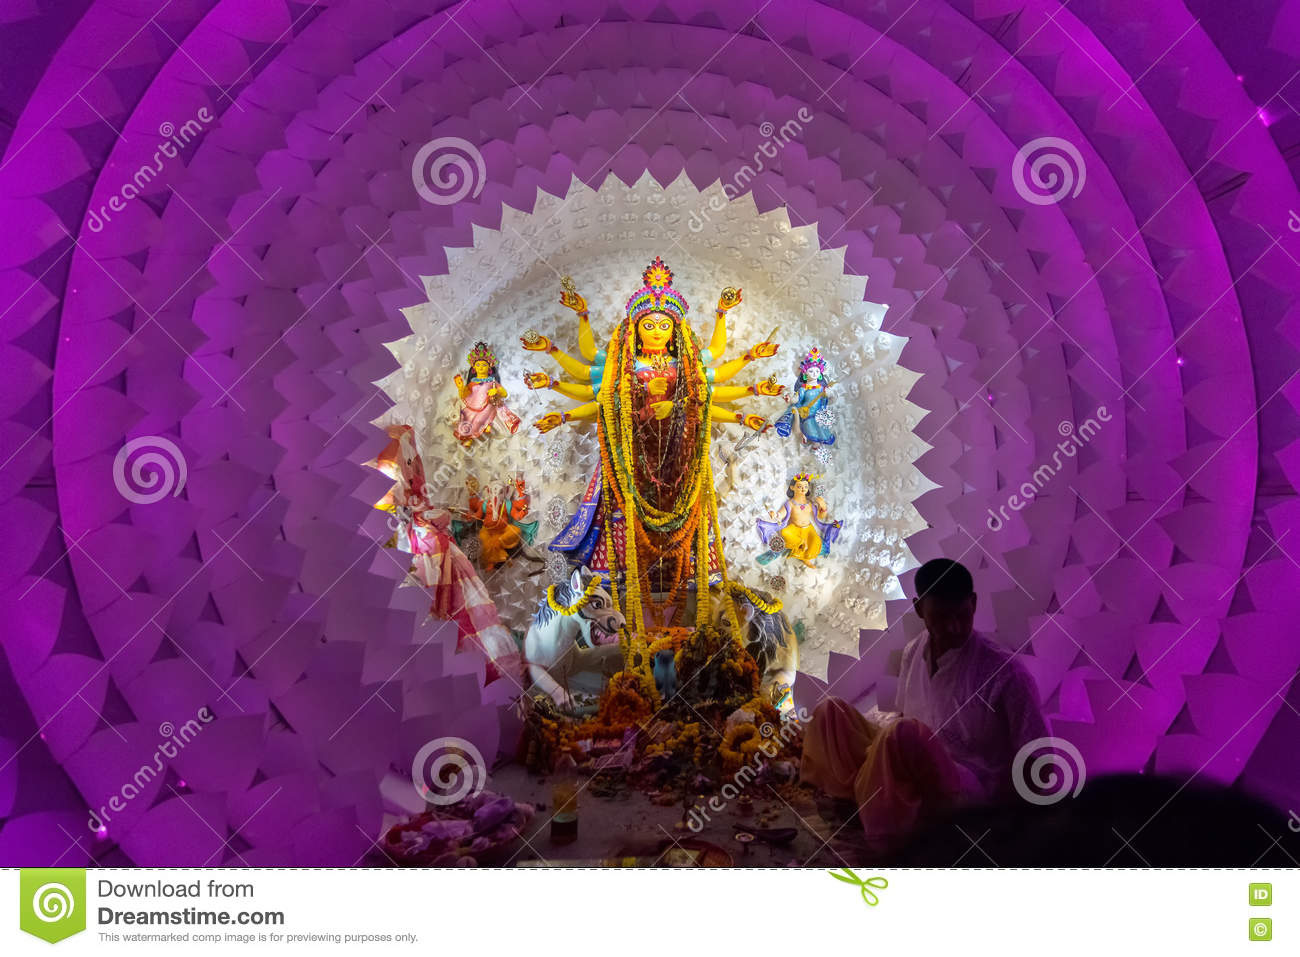 Night image of decorated durga puja pandal kolkata west bengal night image of decorated durga puja pandal kolkata west bengal india altavistaventures Image collections